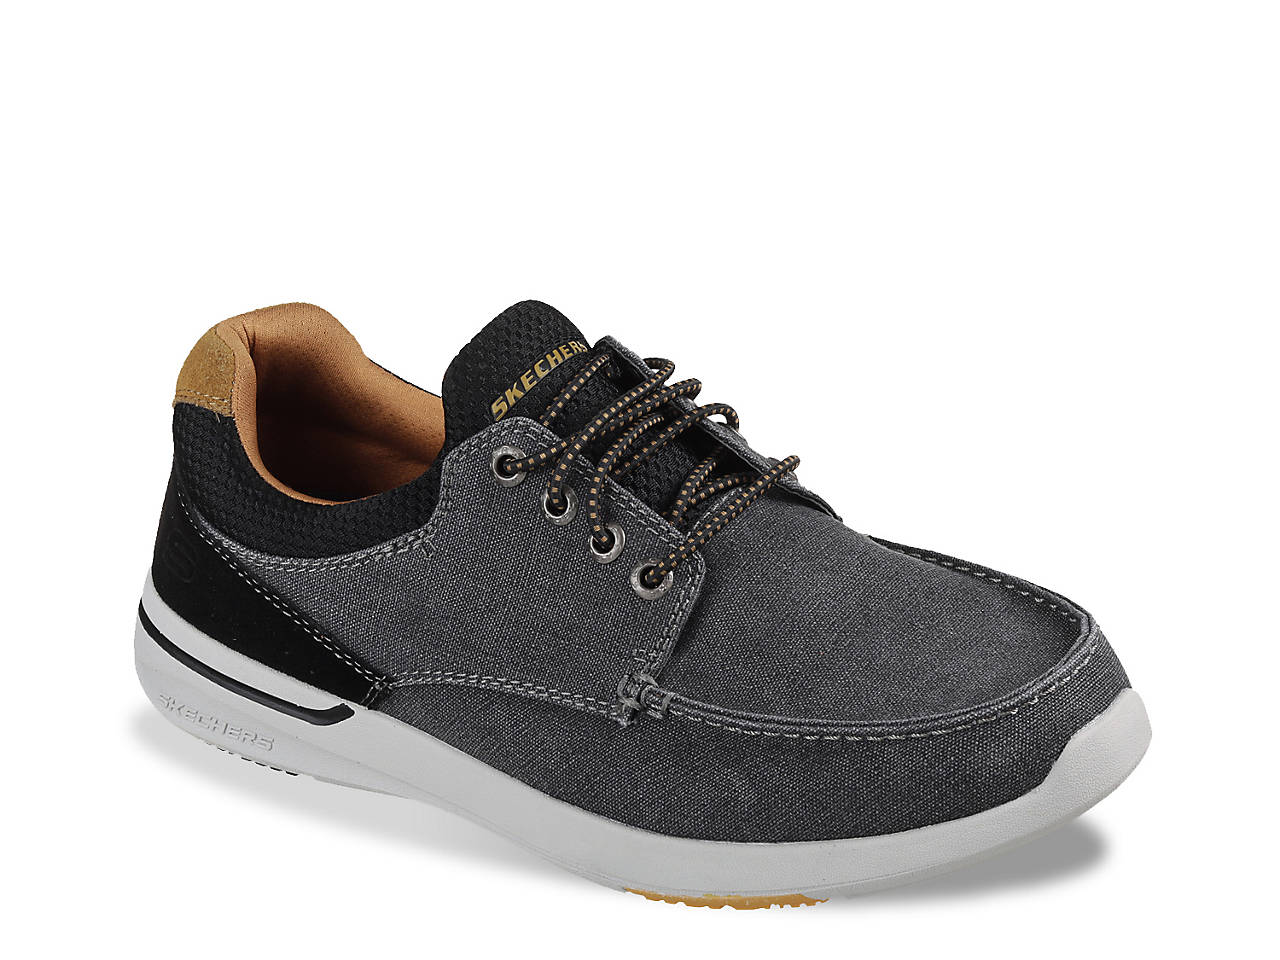 66935661168d Skechers Relaxed Fit Elent Mosen Oxford Men s Shoes